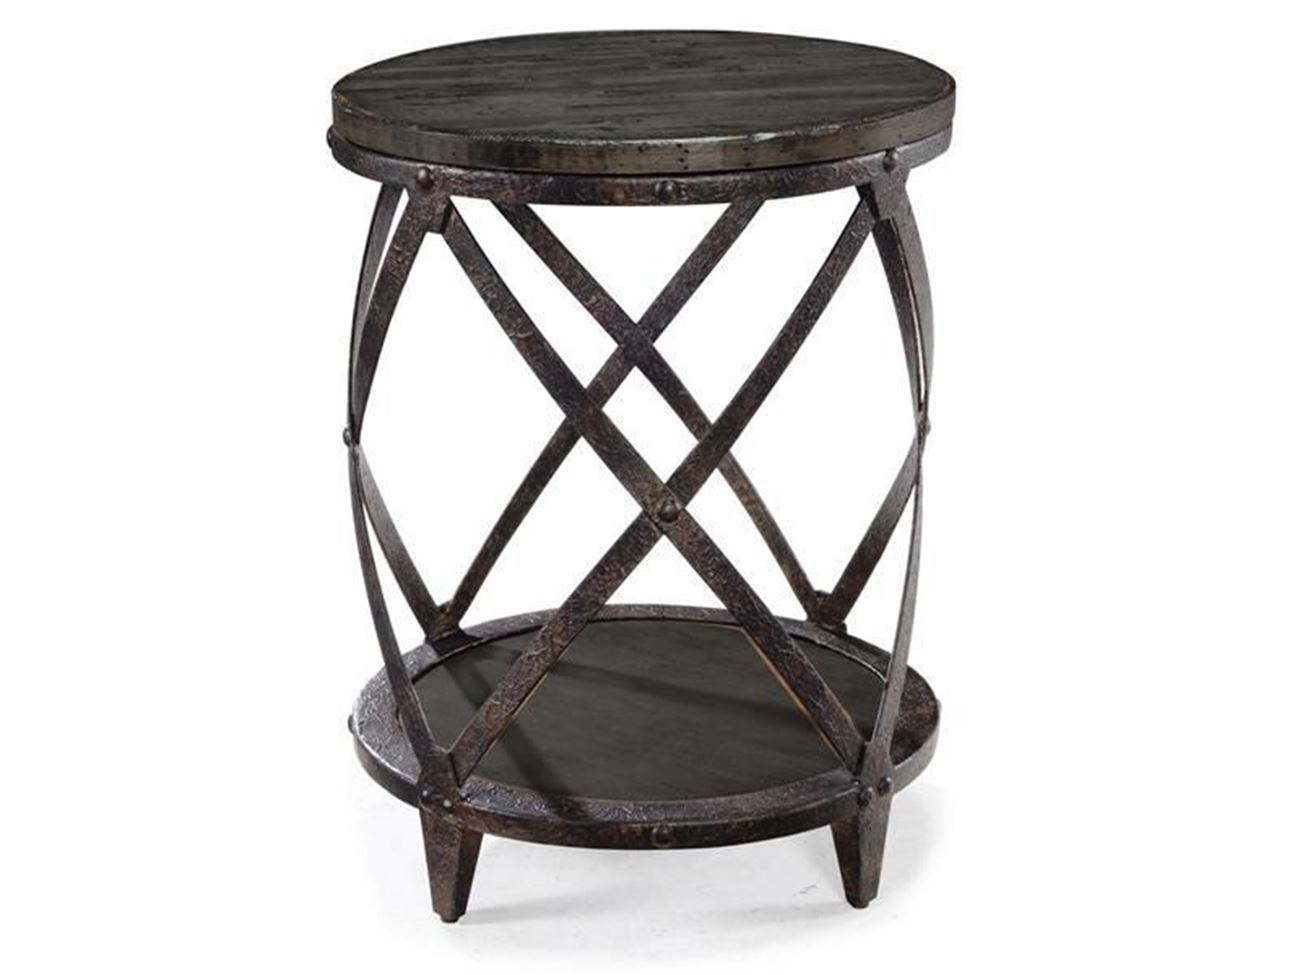 milford round accent table woodstock furniture mattress wood ture small entryway cabinet leather with umbrella hole chairside living room sofa tables target chairs canadian tire